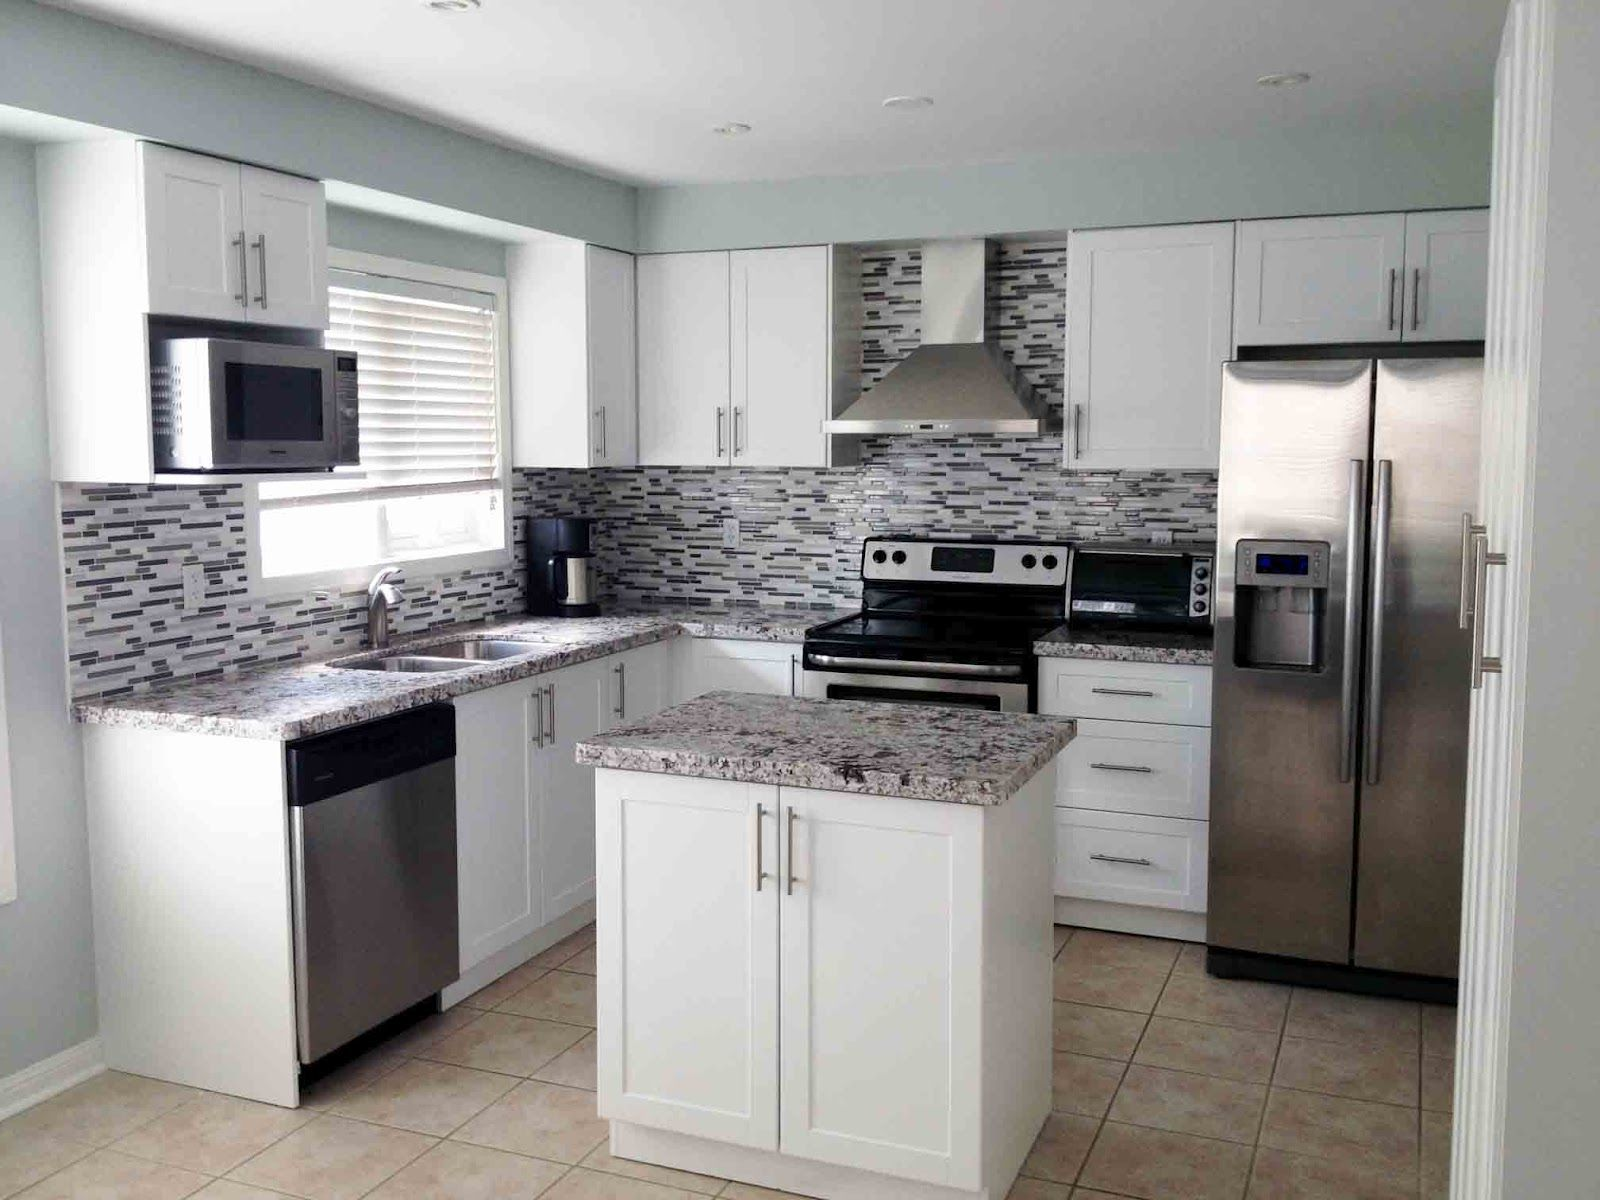 White Kitchen Remodeling Kitchen Remodel Banquet Kitchen Cabinets White Shaker Style